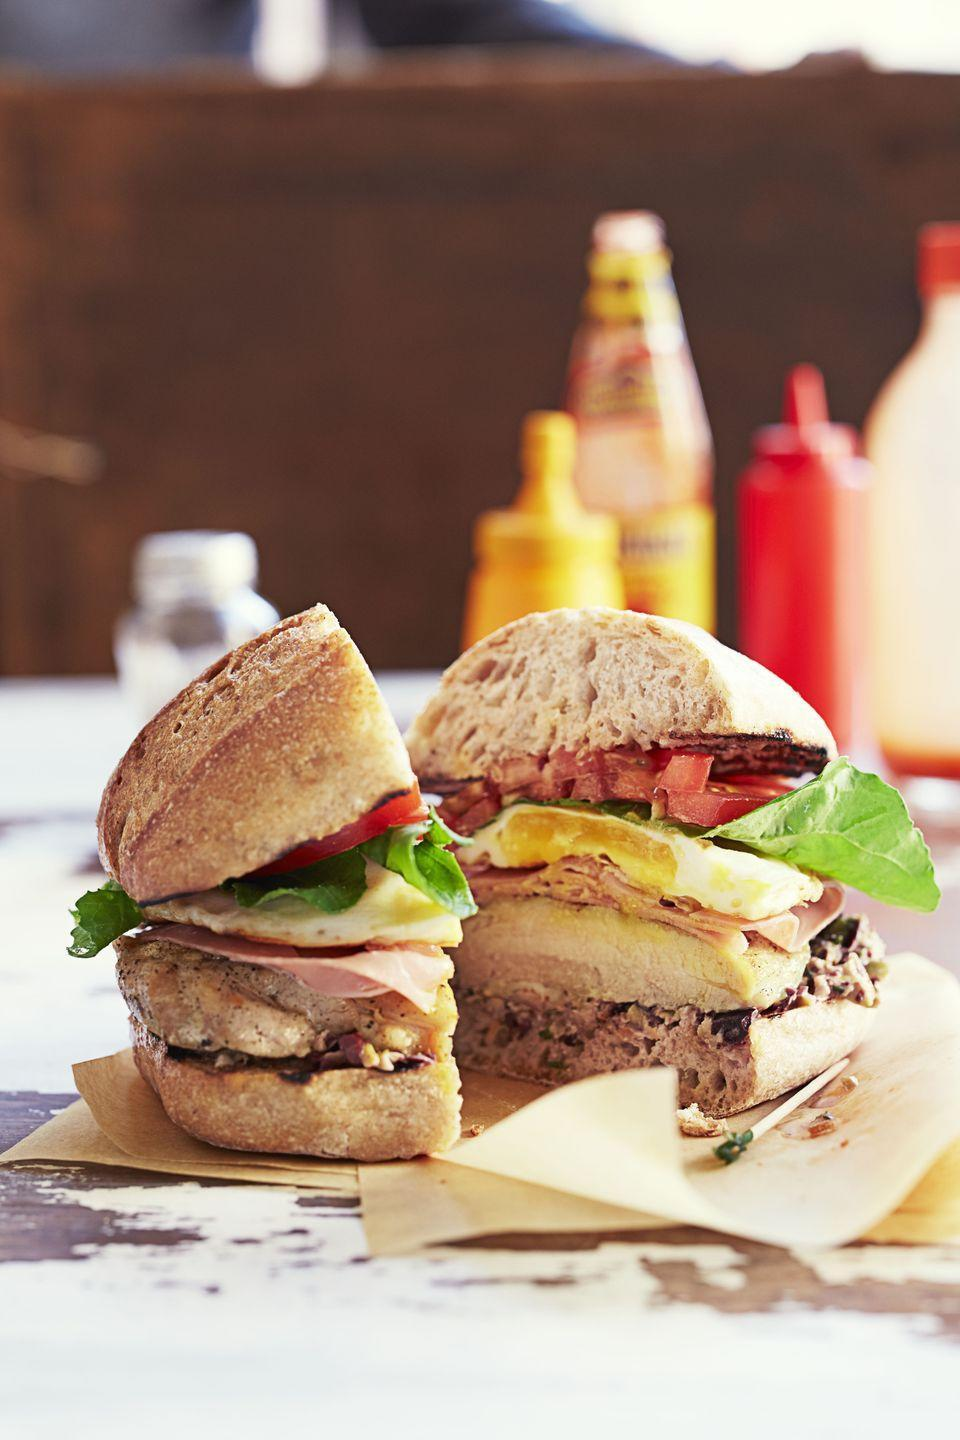 "<p>Meet the Godfather of brunch sandwiches. It's got chicken <em>and</em> eggs because why not?</p><p><em><em><a href=""https://www.goodhousekeeping.com/food-recipes/a16992/chicken-chivito-sandwich-recipe-ghk0315/"" rel=""nofollow noopener"" target=""_blank"" data-ylk=""slk:Get the recipe for Chicken Chivito Sandwich »"" class=""link rapid-noclick-resp"">Get the recipe for Chicken Chivito Sandwich »</a></em> </em></p>"